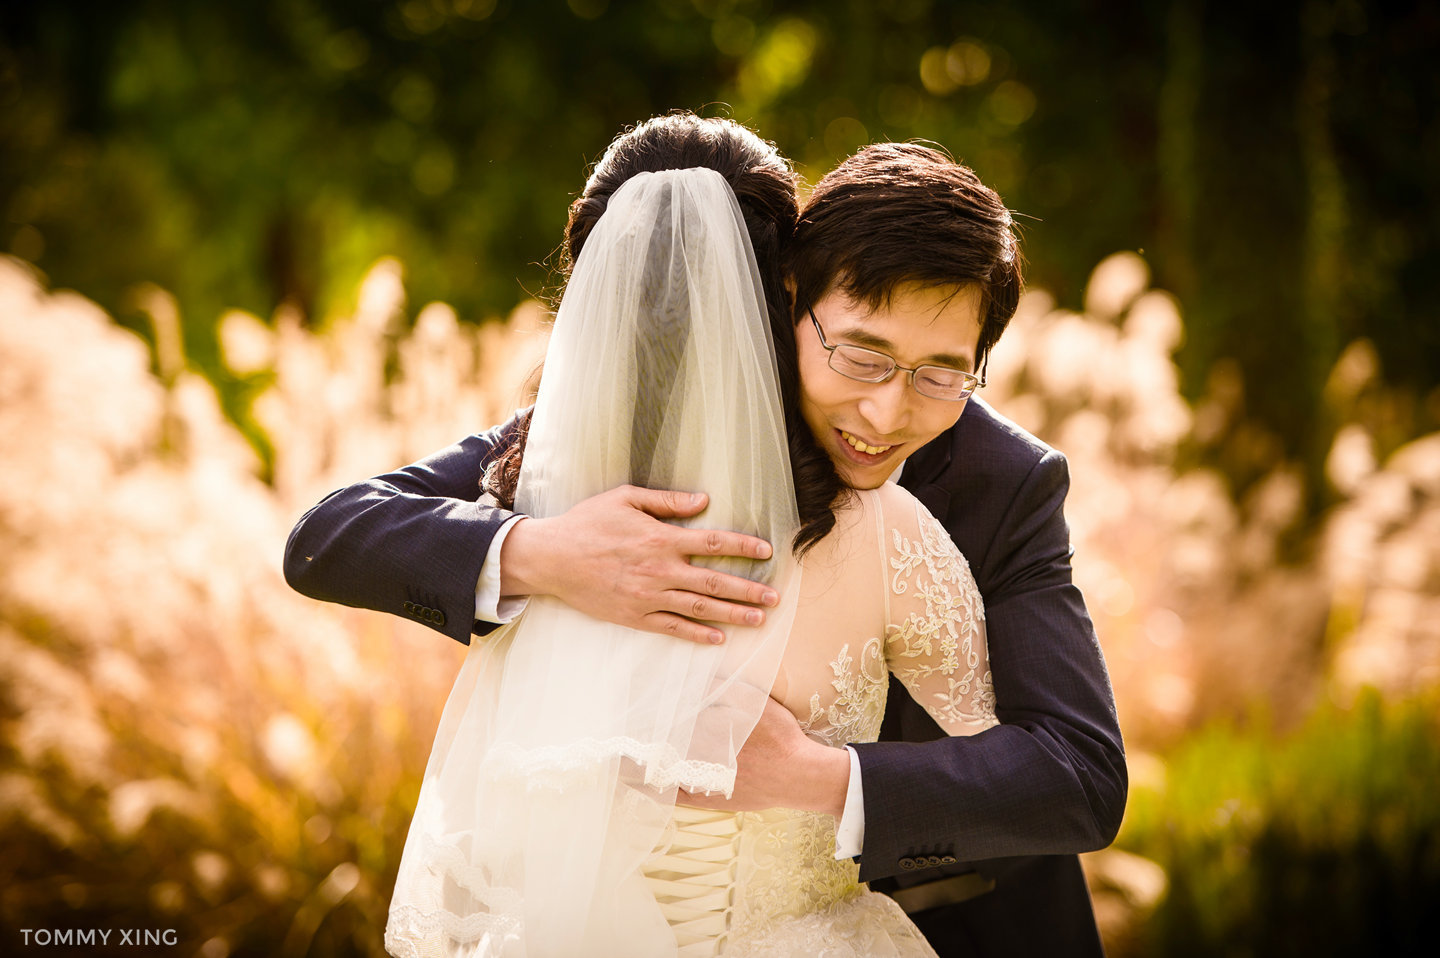 San Francisco Wedding Photography Valley Presbyterian Church WEDDING Tommy Xing Photography 洛杉矶旧金山婚礼婚纱照摄影师036.jpg